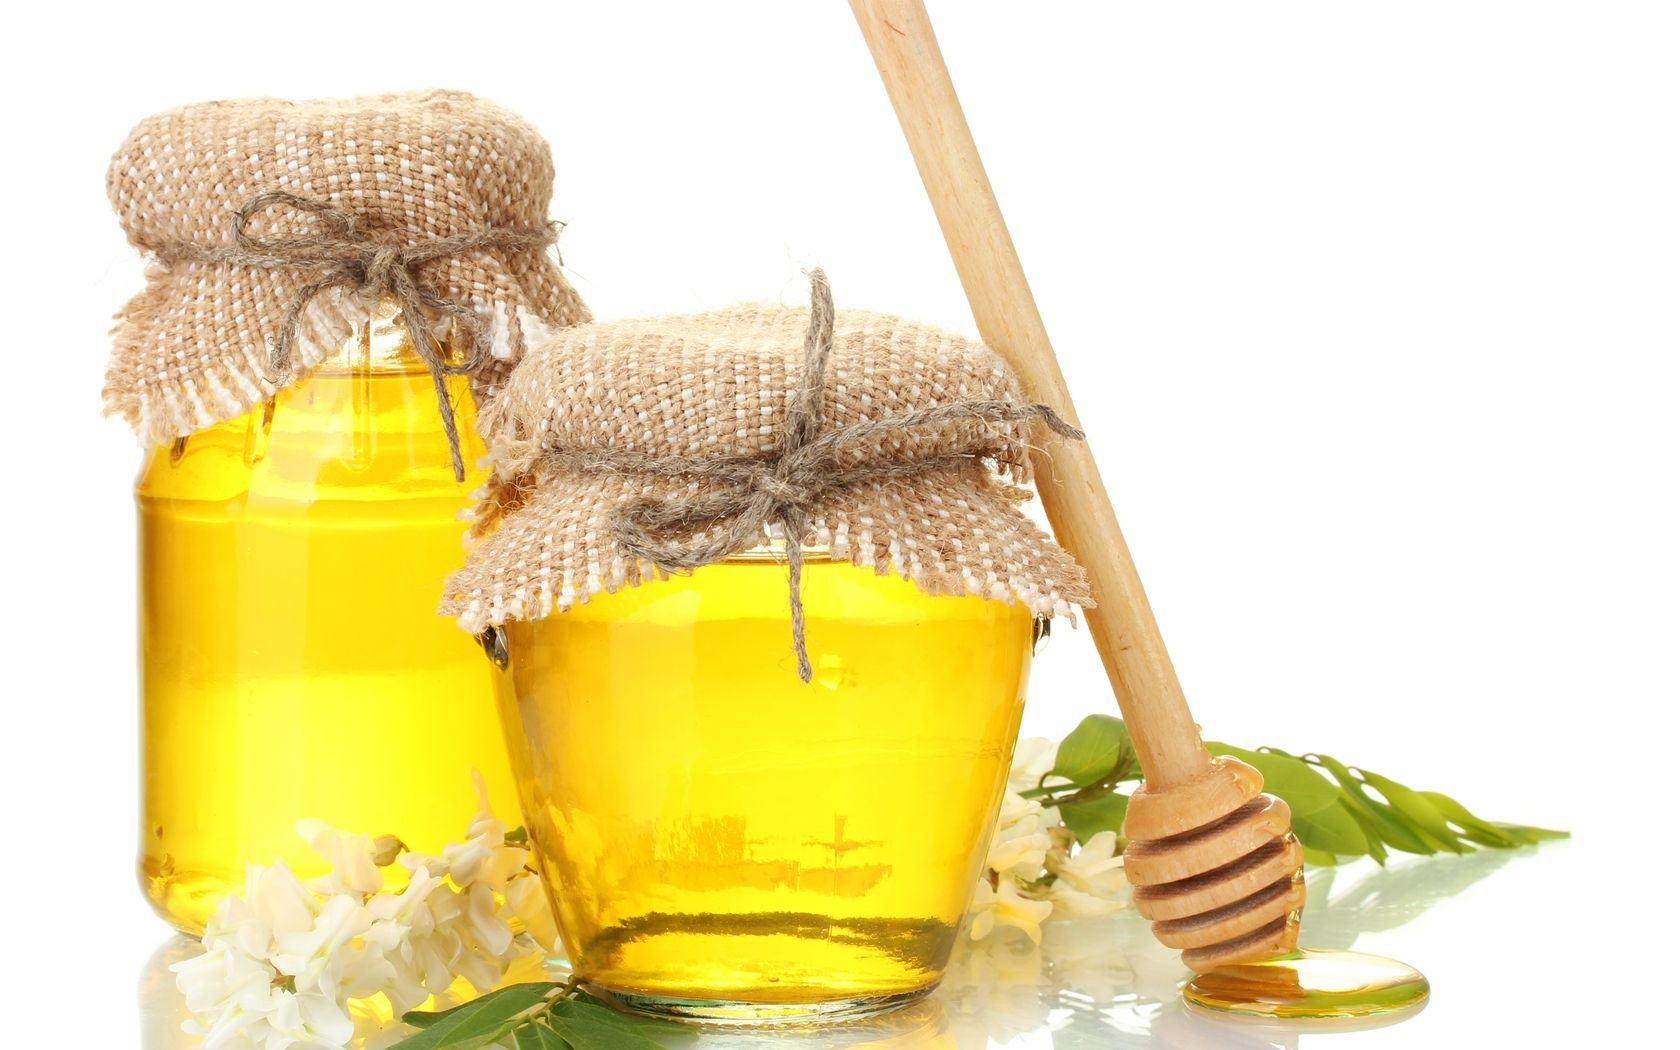 The wonderful humectant properties of honey makes it an amazing